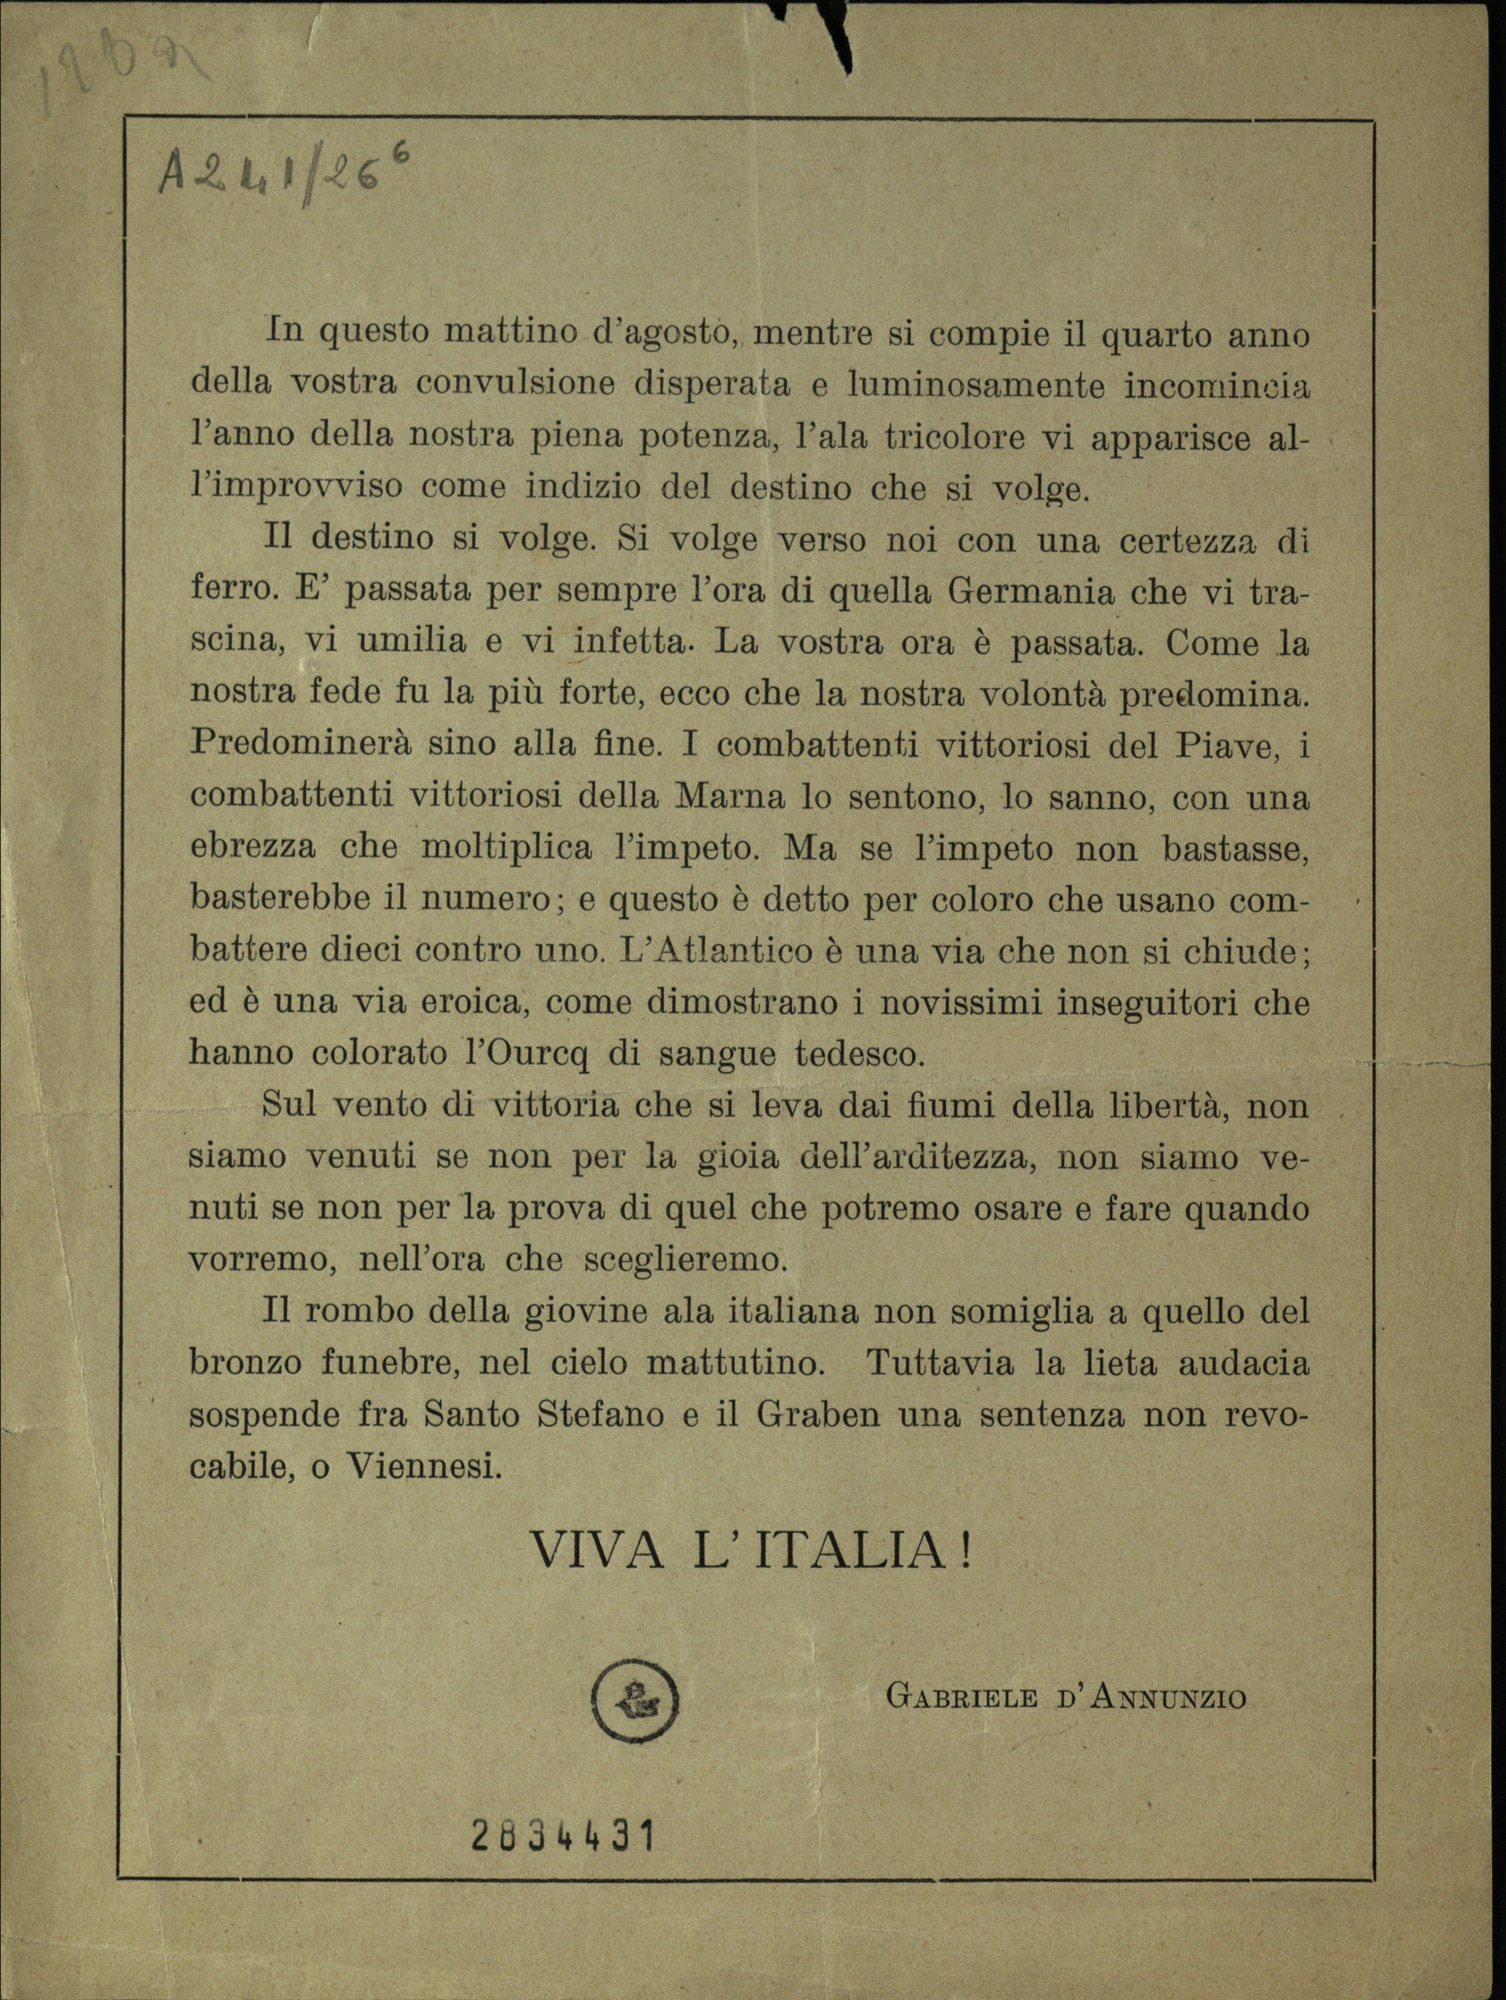 Flyer dropped during the flight over Vienna by the air squadron of Gabriele d'Annunzio, highlighting the allied victories in Italy and in France during the final months of the war.